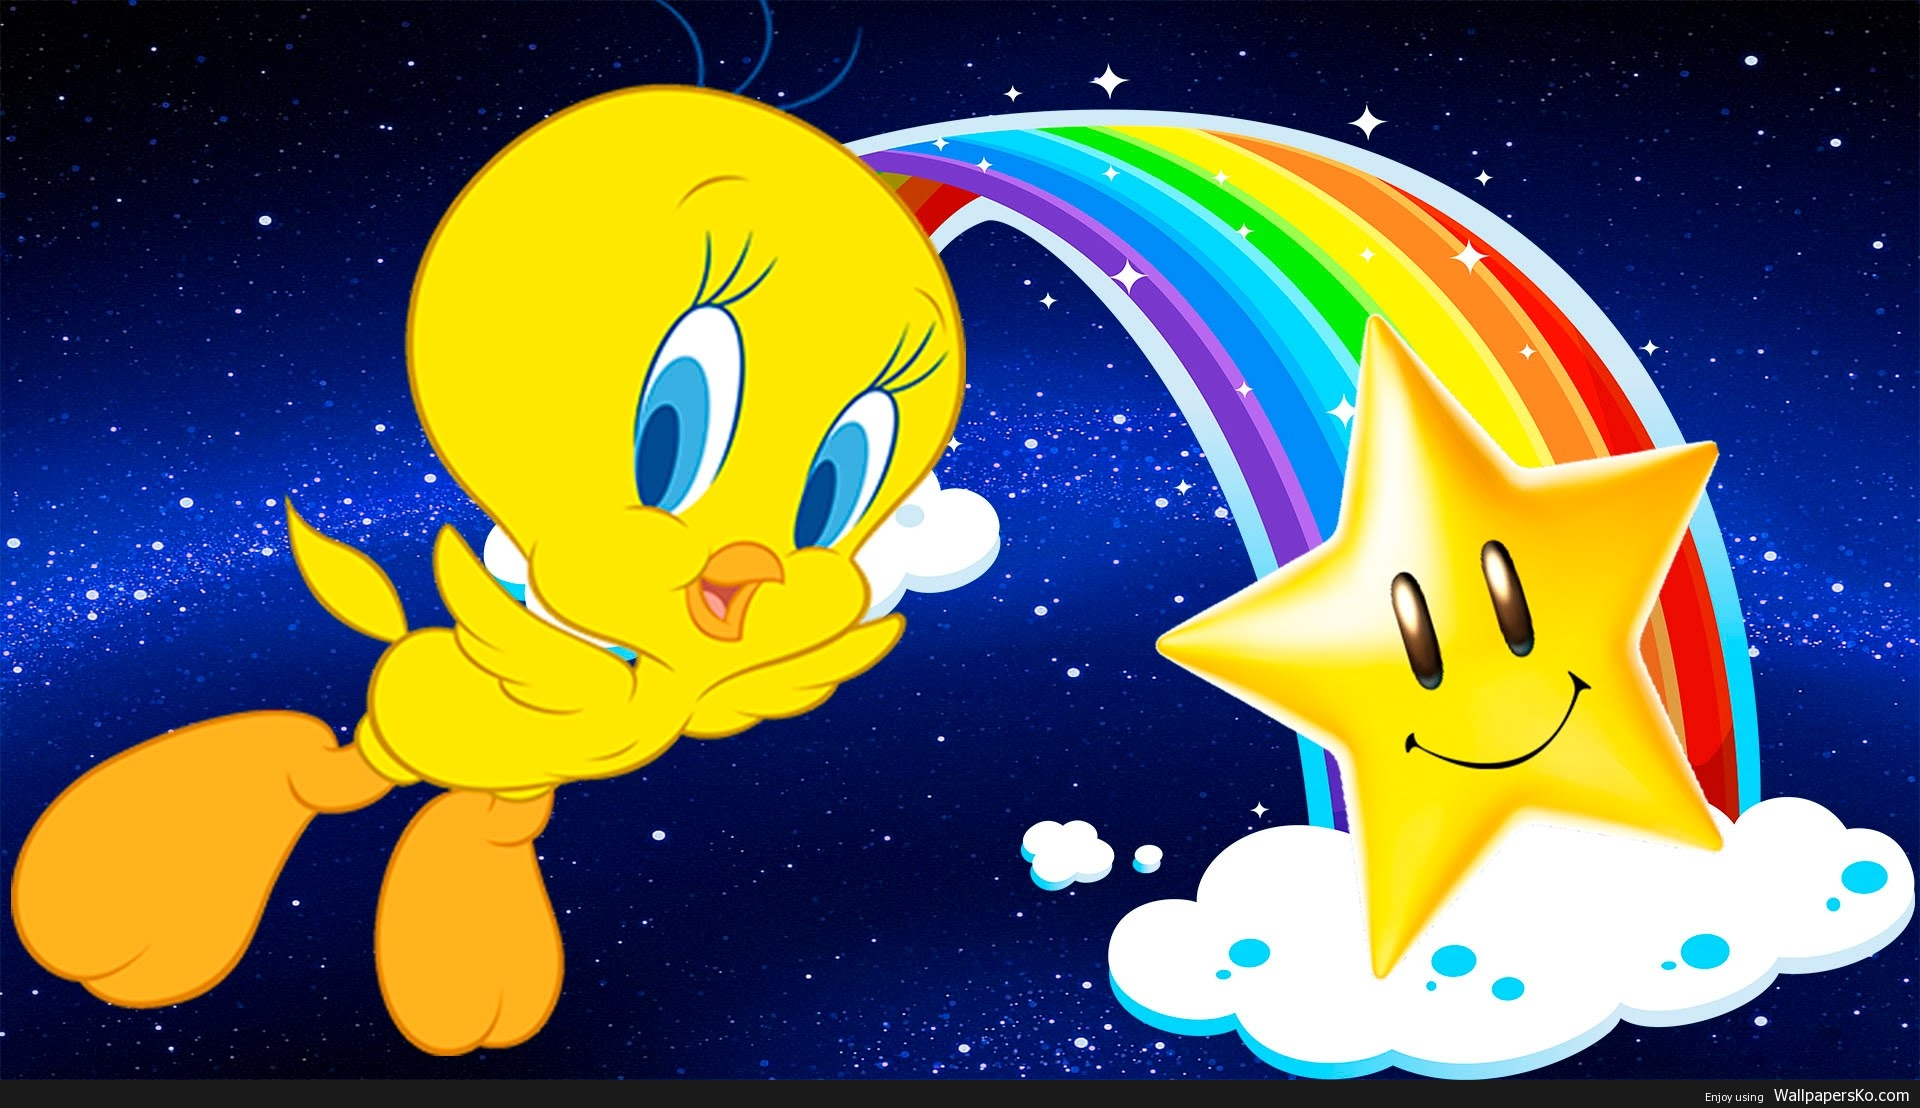 tweety bird wallpaper hd